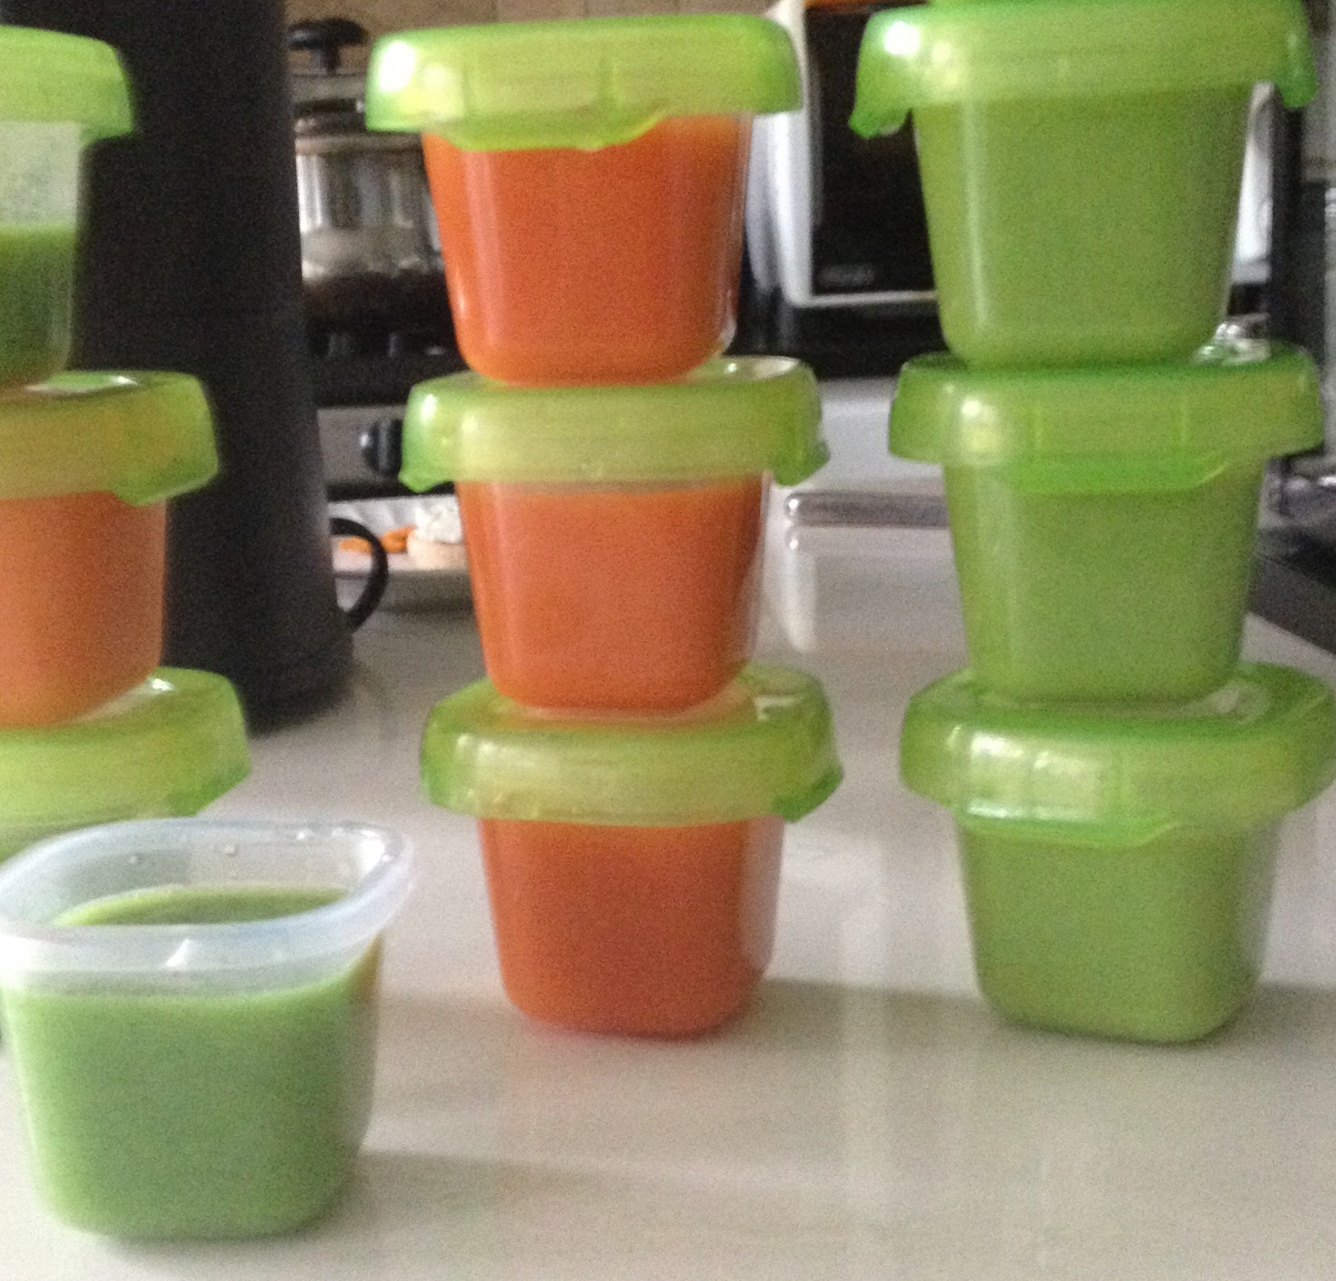 Pre-made baby food for infants (pureed carrot and broccoli)